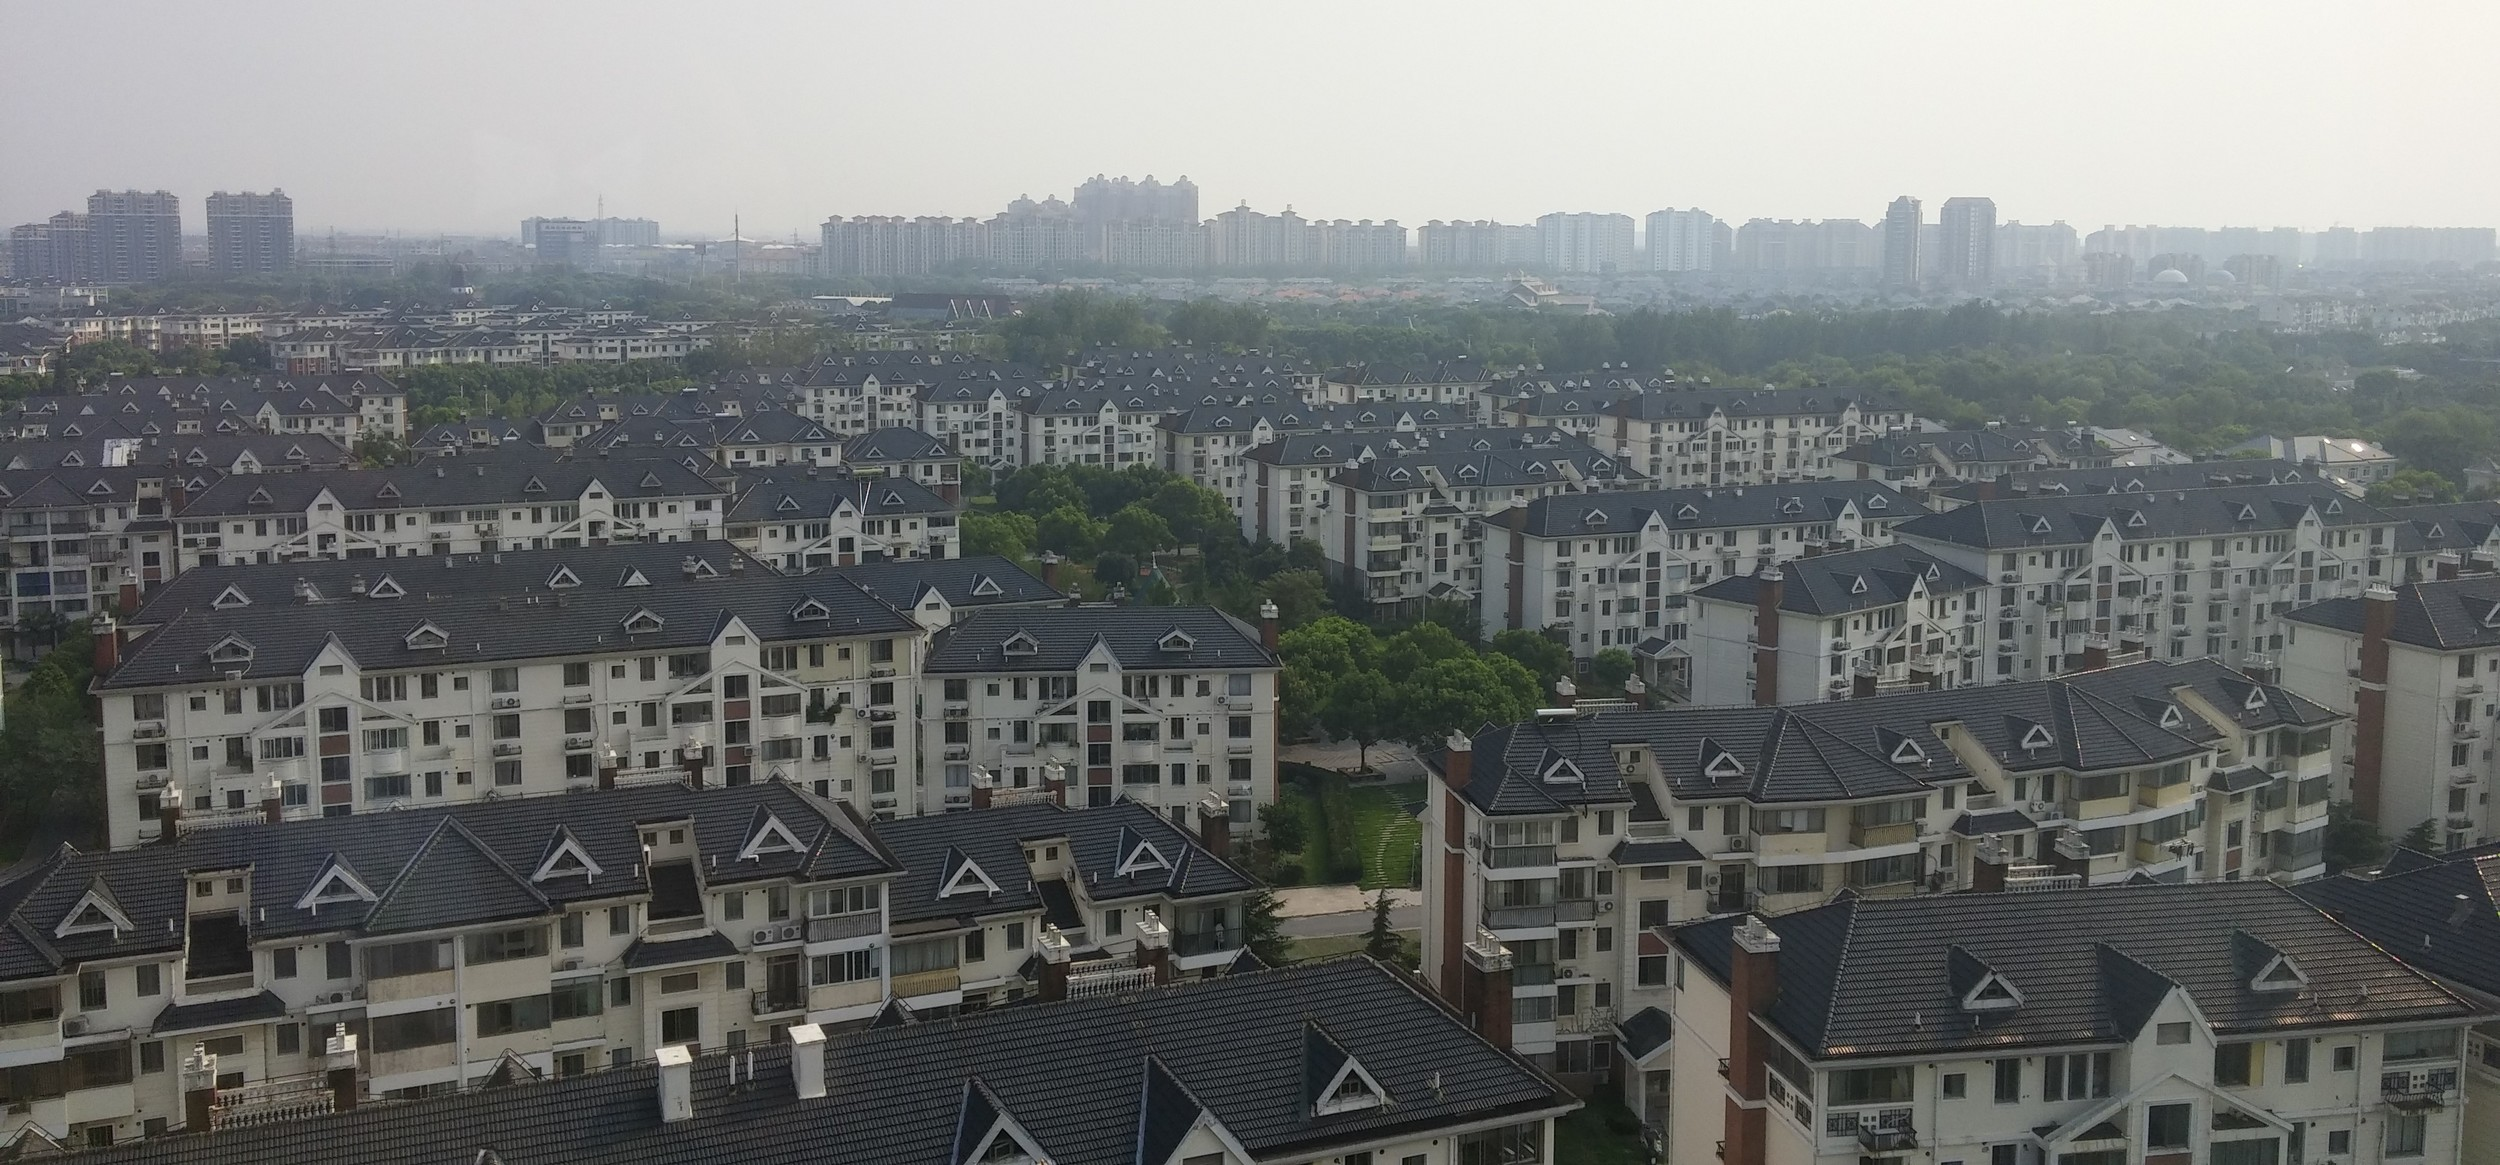 A view from a hotel in a Shanghai suburb where AYC orientation took place